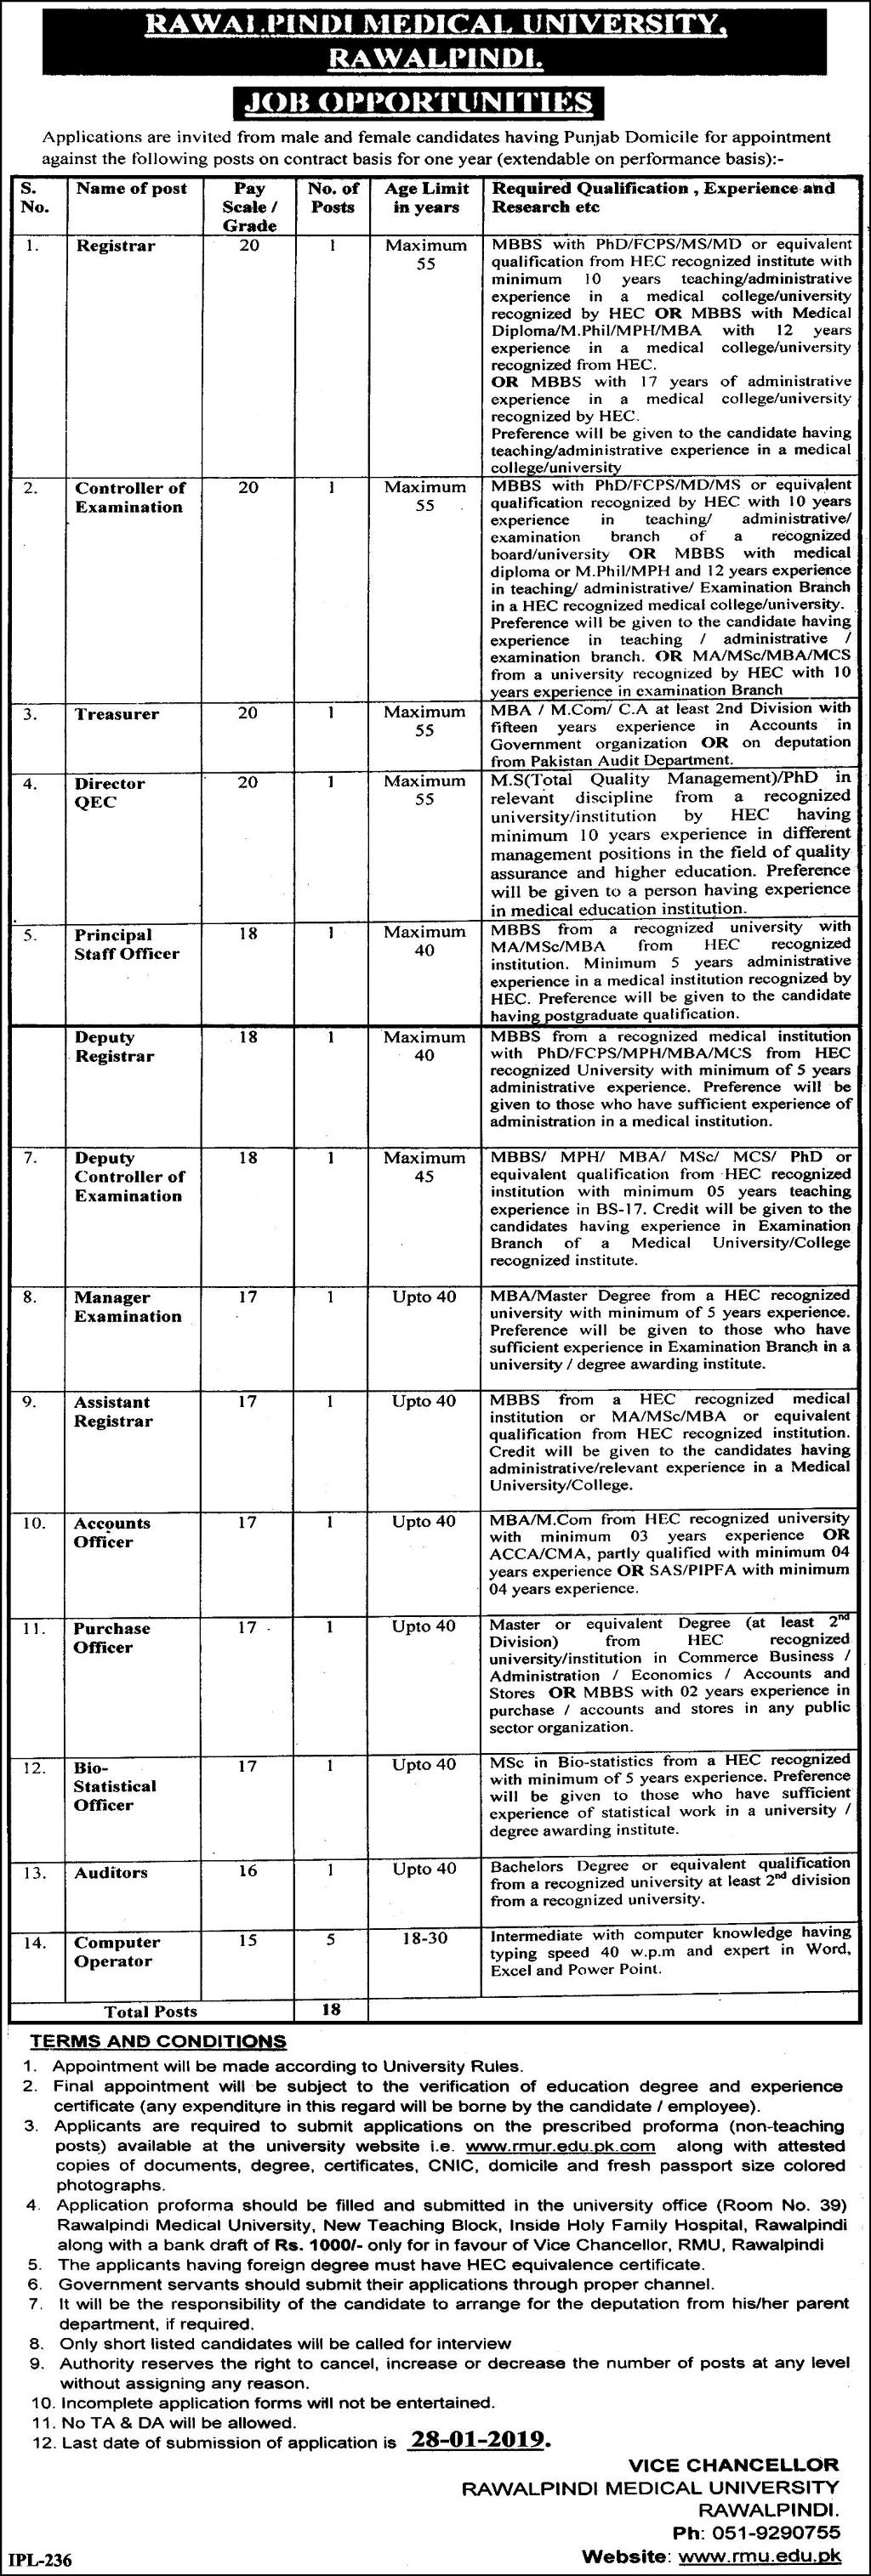 Rawalpindi Medical University Jobs 2019 RMU Rawalpindi